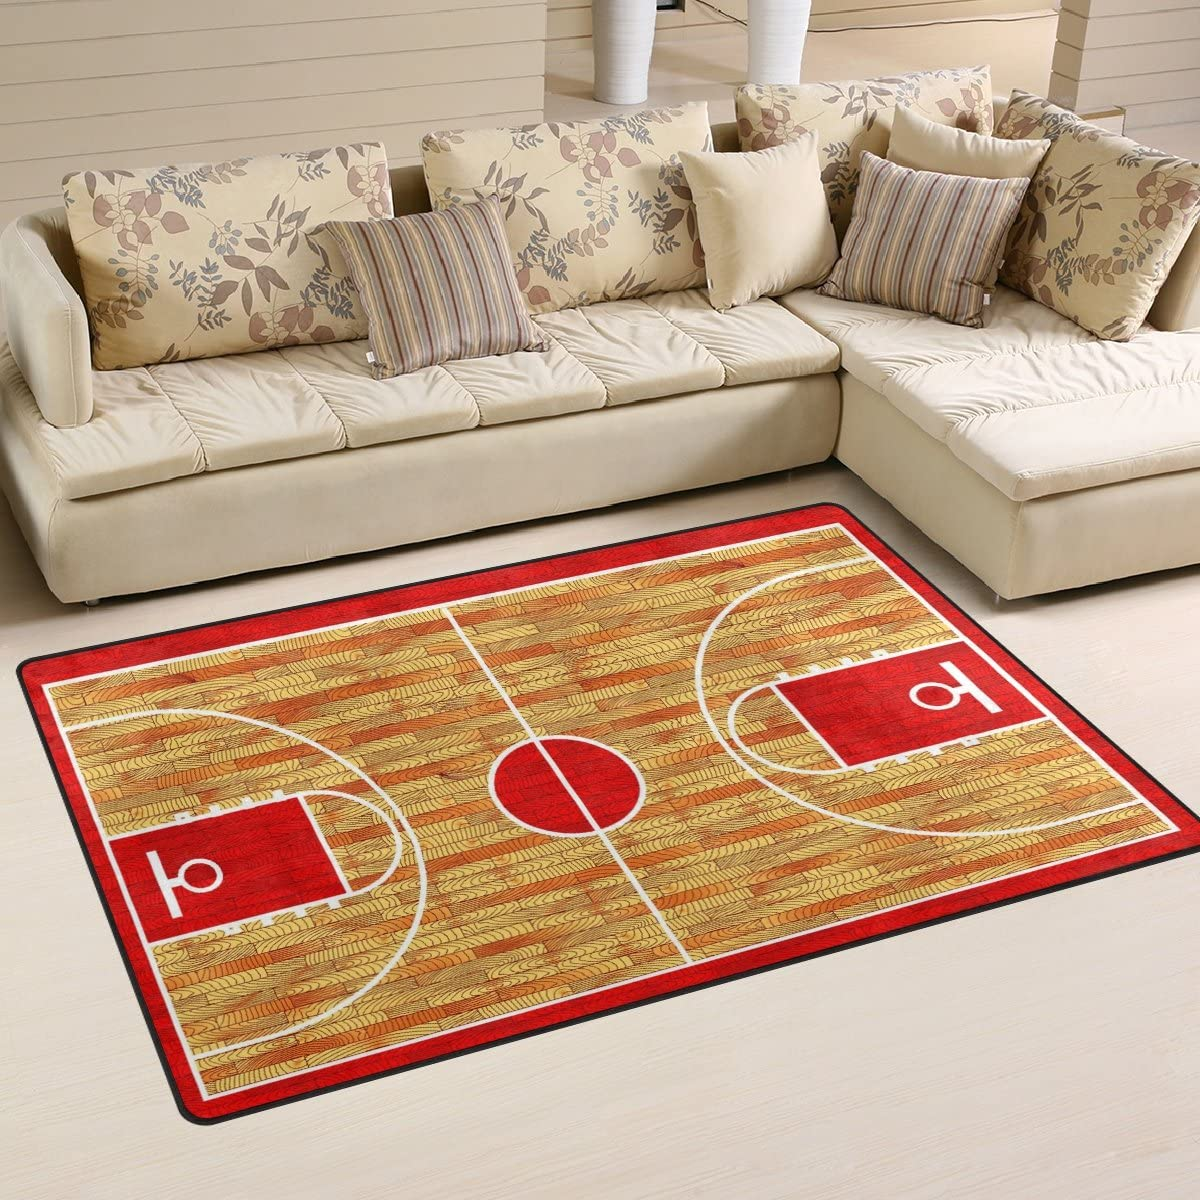 WOZO Hardwood Basketball Court Area Rug Rugs Non-Slip Floor Mat Doormats Living Dining Room Bedroom Dorm 60 x 39 inches inches Home Decor